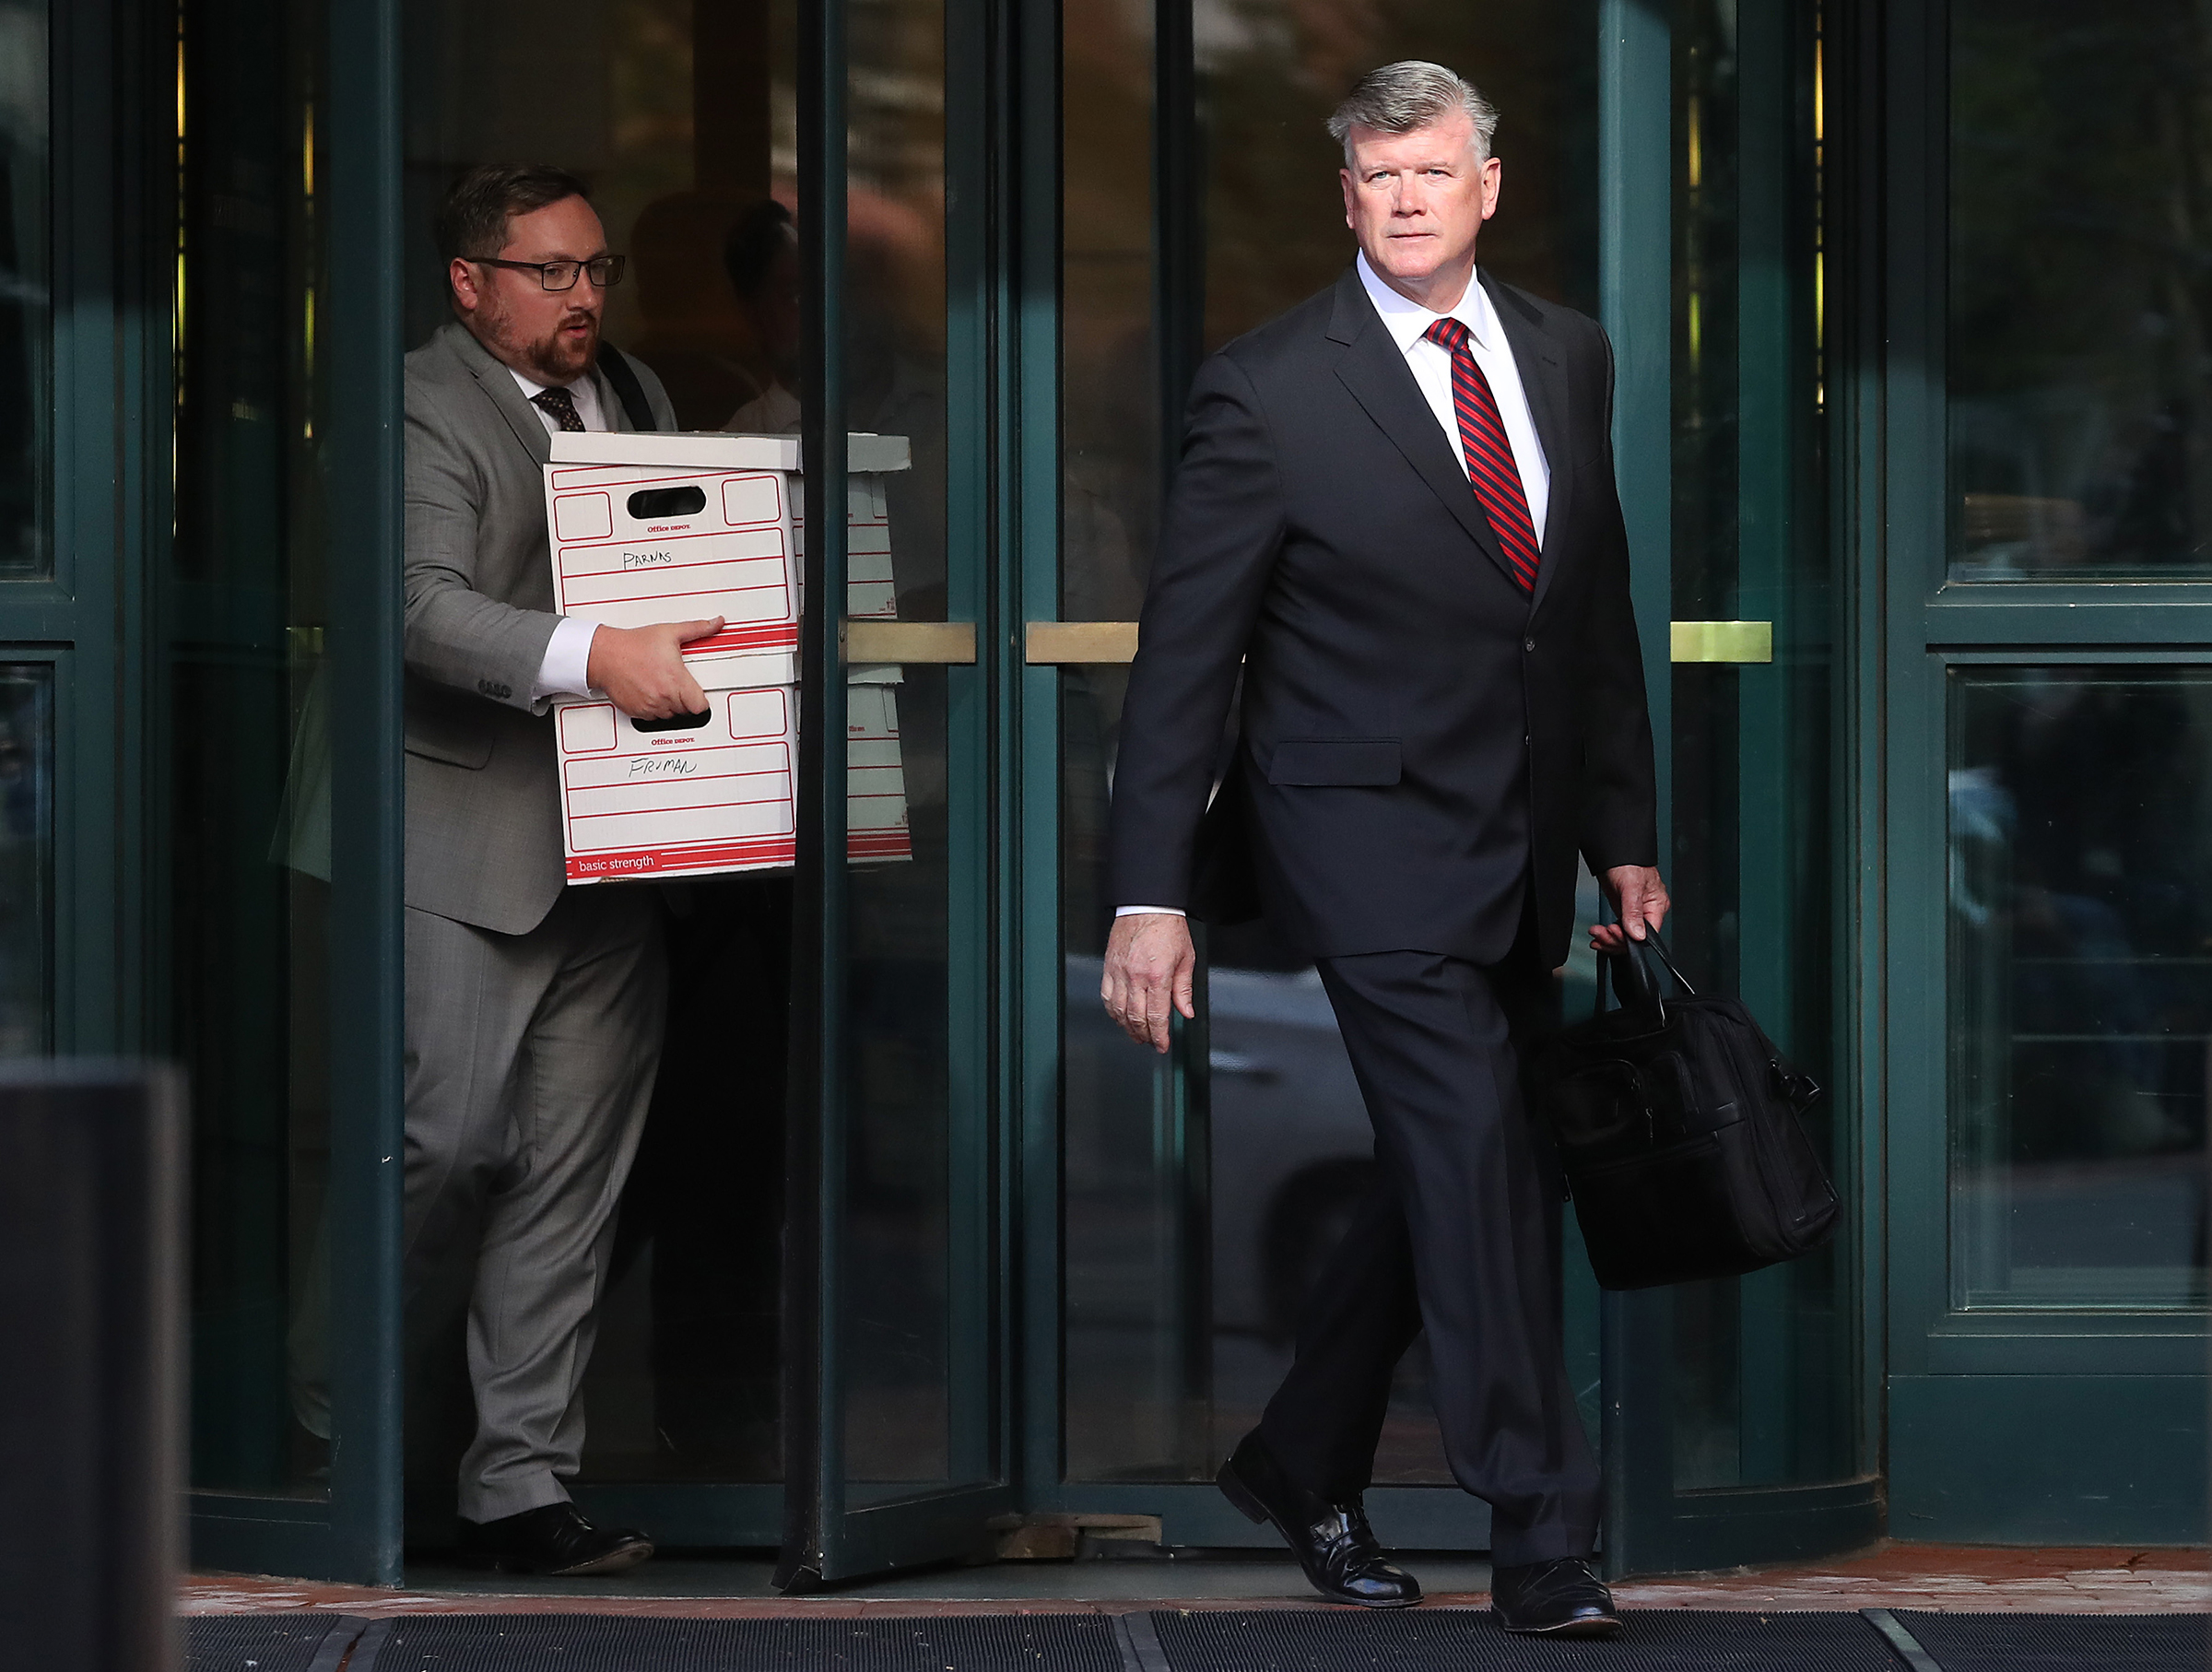 Attorney Kevin Downing, right, who is representing two associates of Rudy Giuliani, Lev Parnas and Igor Fruman, walks out of a federal courthouse after a hearing in Alexandria, Va., on Oct. 10, 2019.